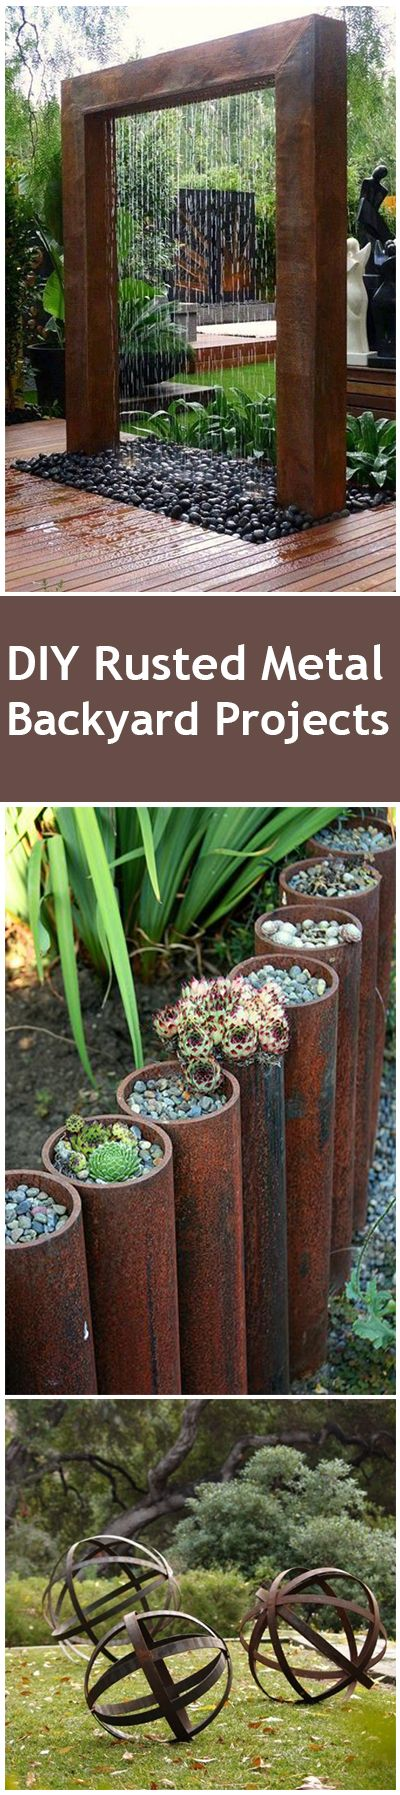 DIY Rusted Metal Backyard Projects